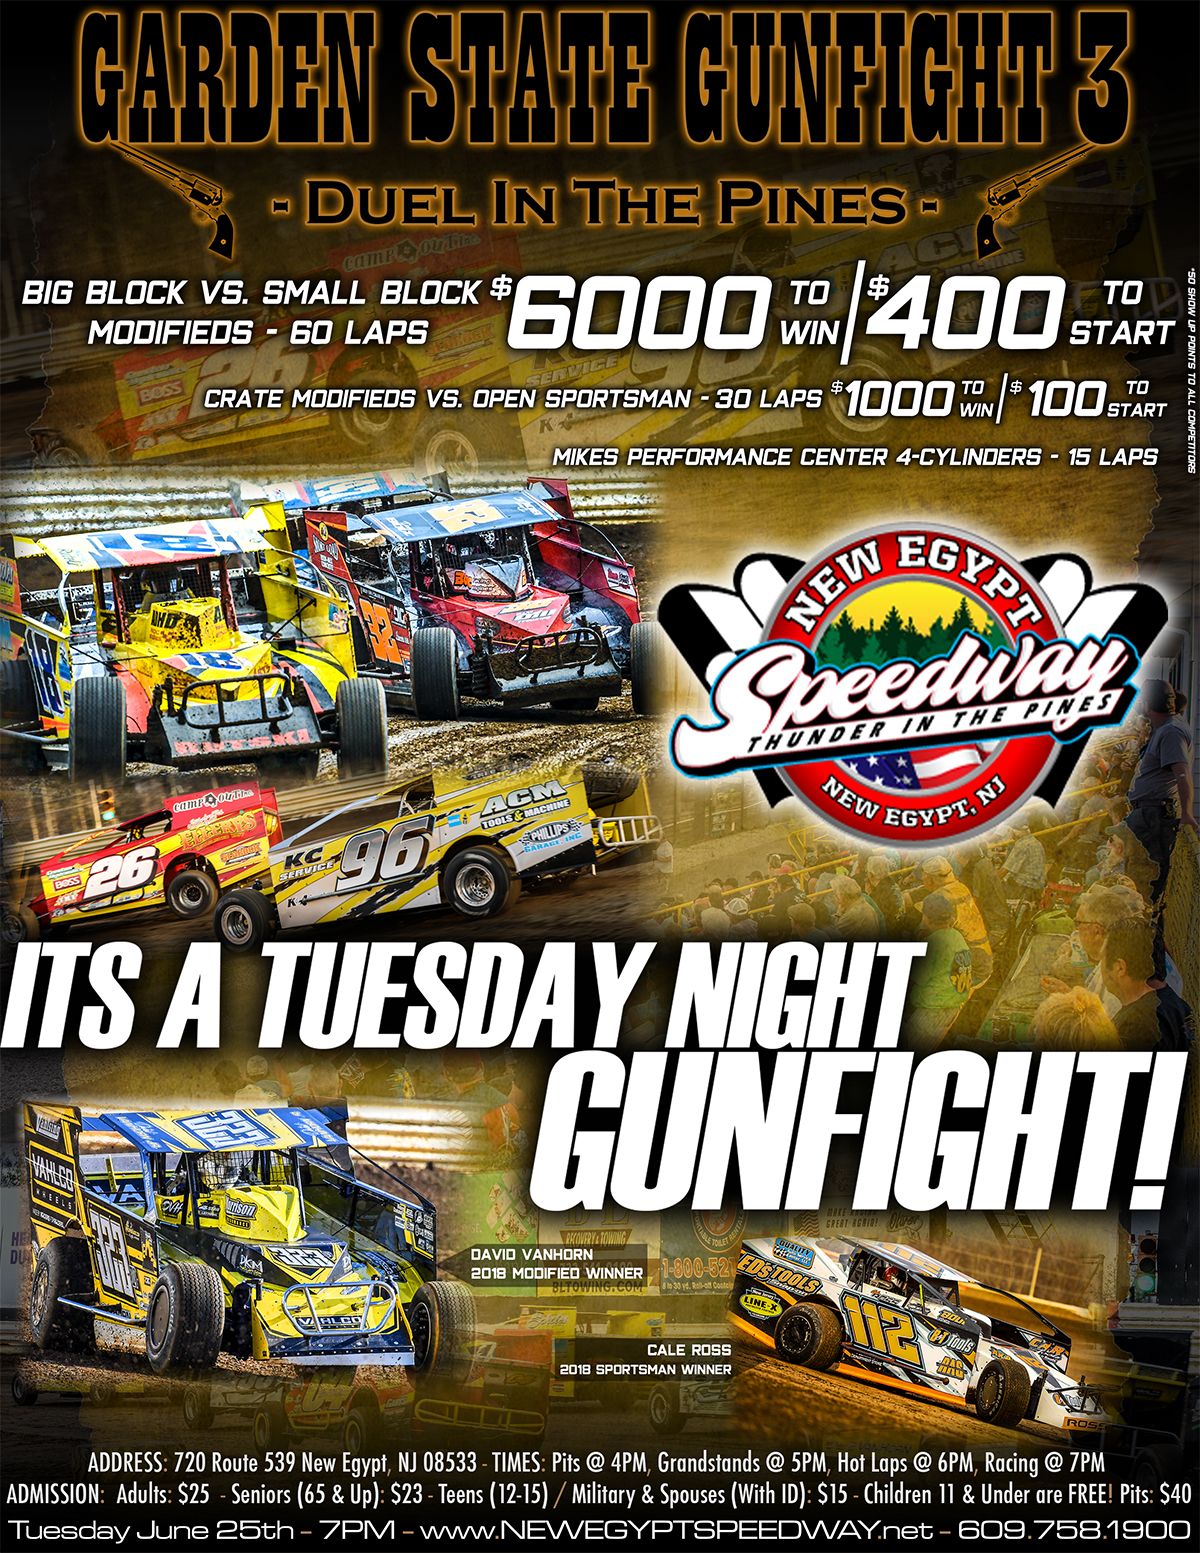 TOP DRIVERS WILL BE SHOOTING FOR A BIG PAYDAY AT NEW EGYPT SPEEDWAY'S GARDEN STATE GUNFIGHT 2 ON WEDNESDAY, JUNE 27